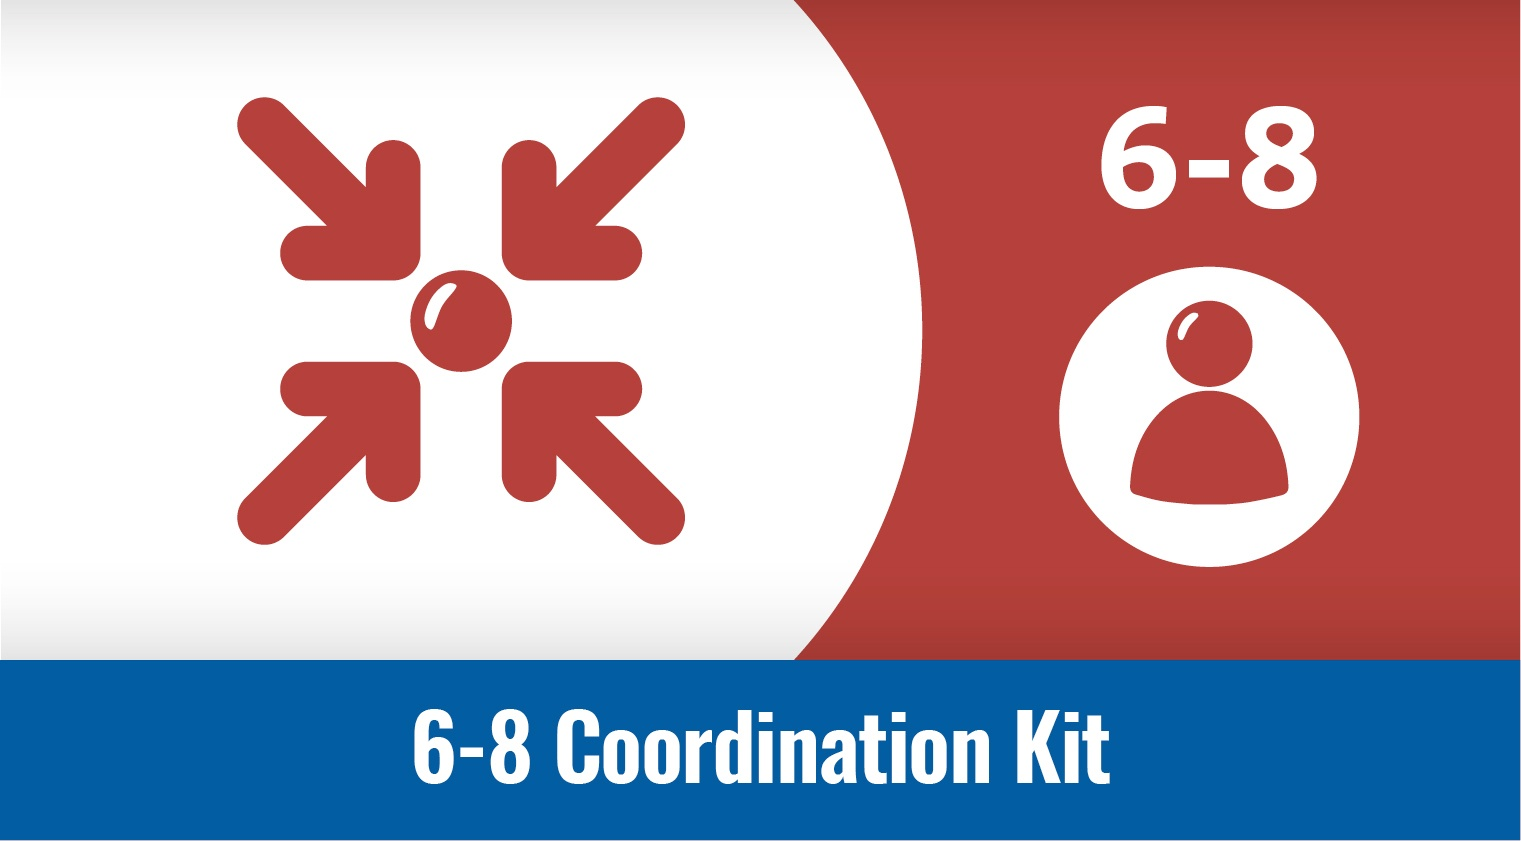 Coordination Kit (6-8): CATCHy Ideas Kit